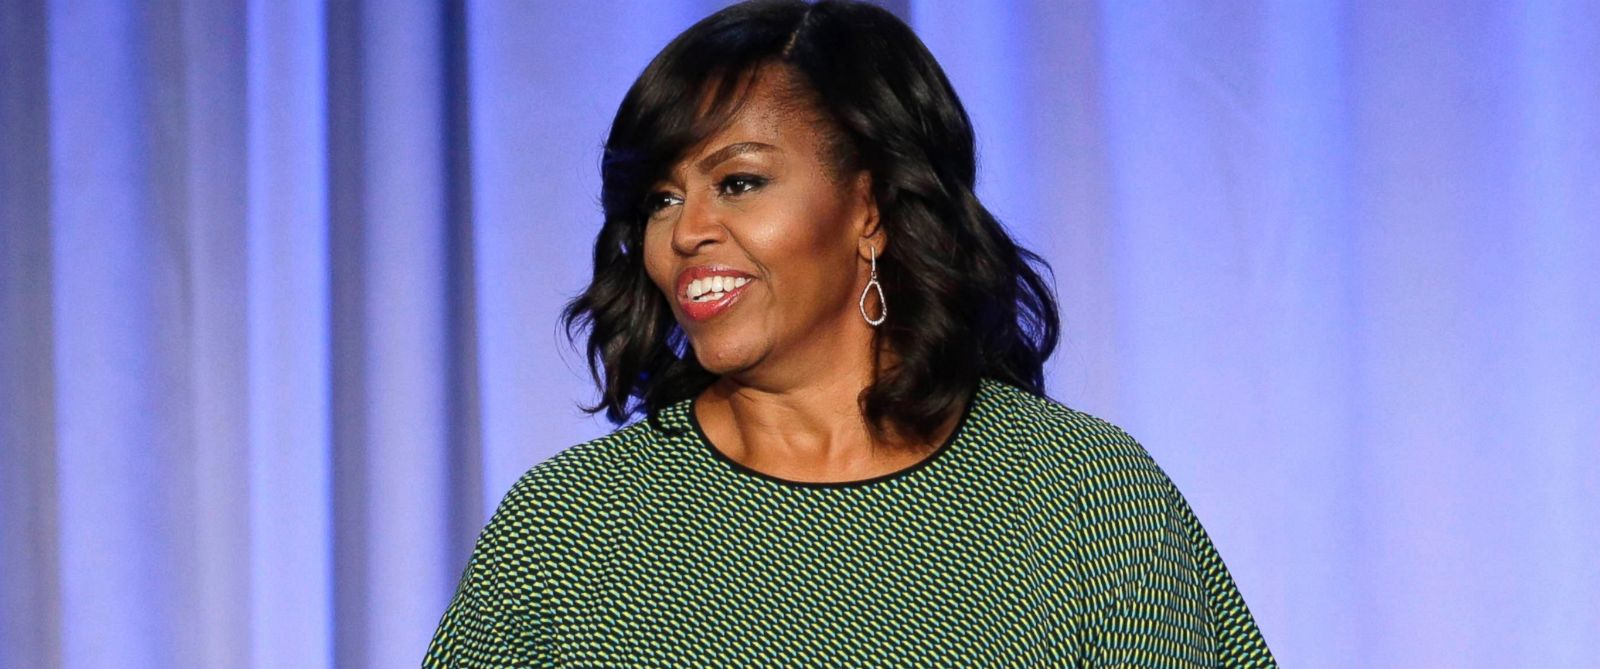 """PHOTO: First lady Michelle Obama participates in a panel entitled """"Media with Purpose"""" at the American Magazine Media 360 Conference in New York, Feb. 2, 2016."""